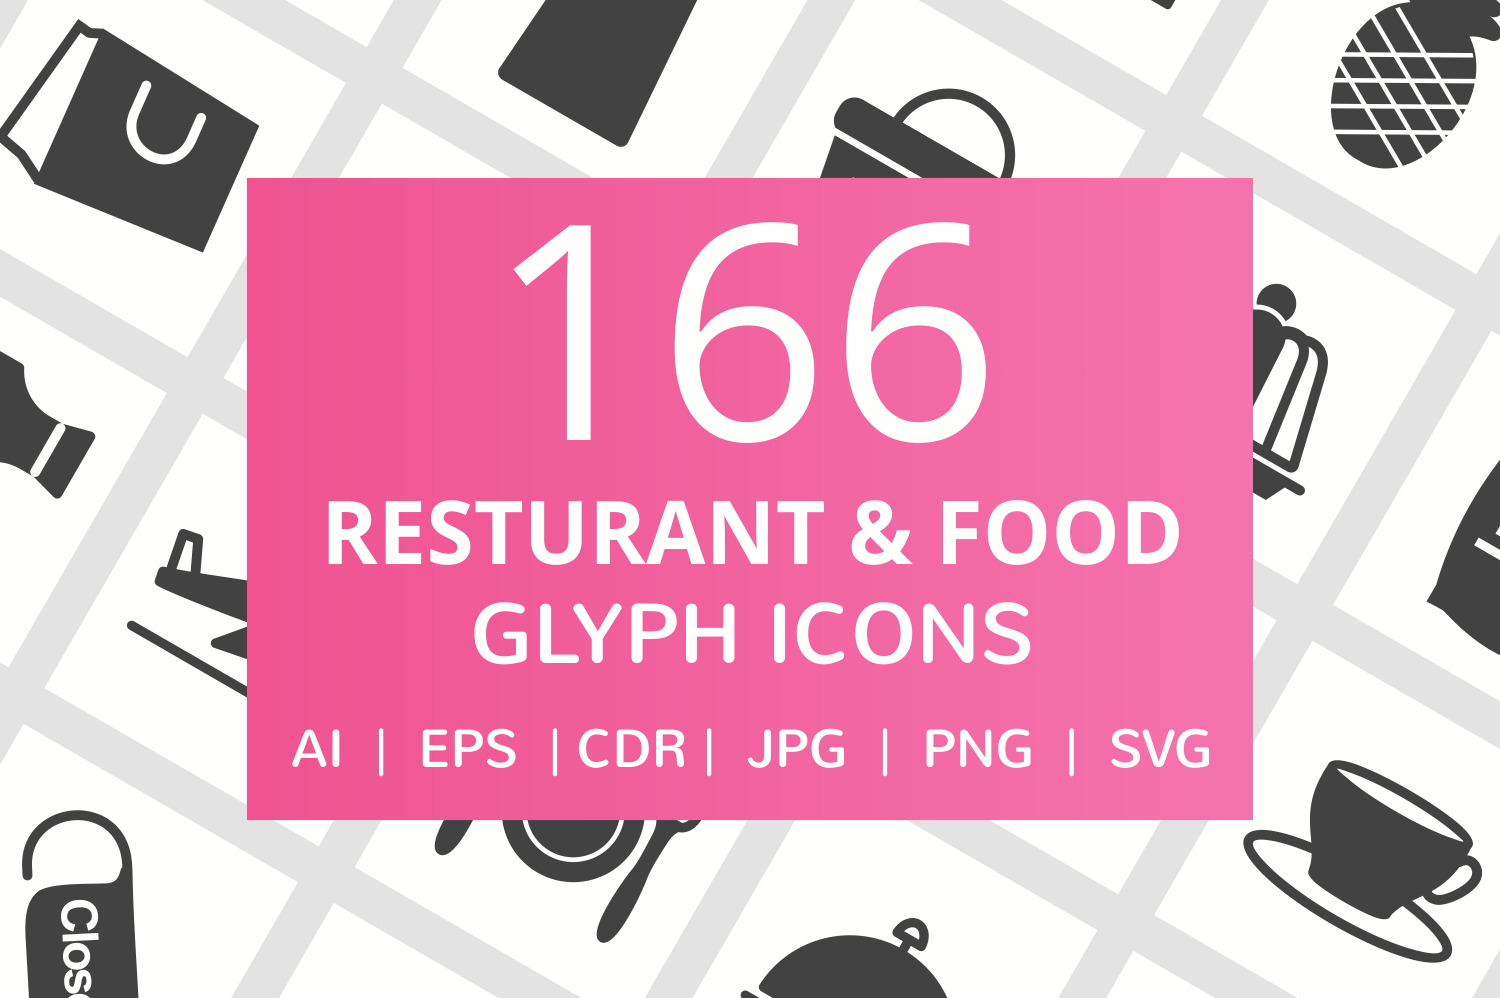 166 Restaurant & Food Glyph Icons example image 1